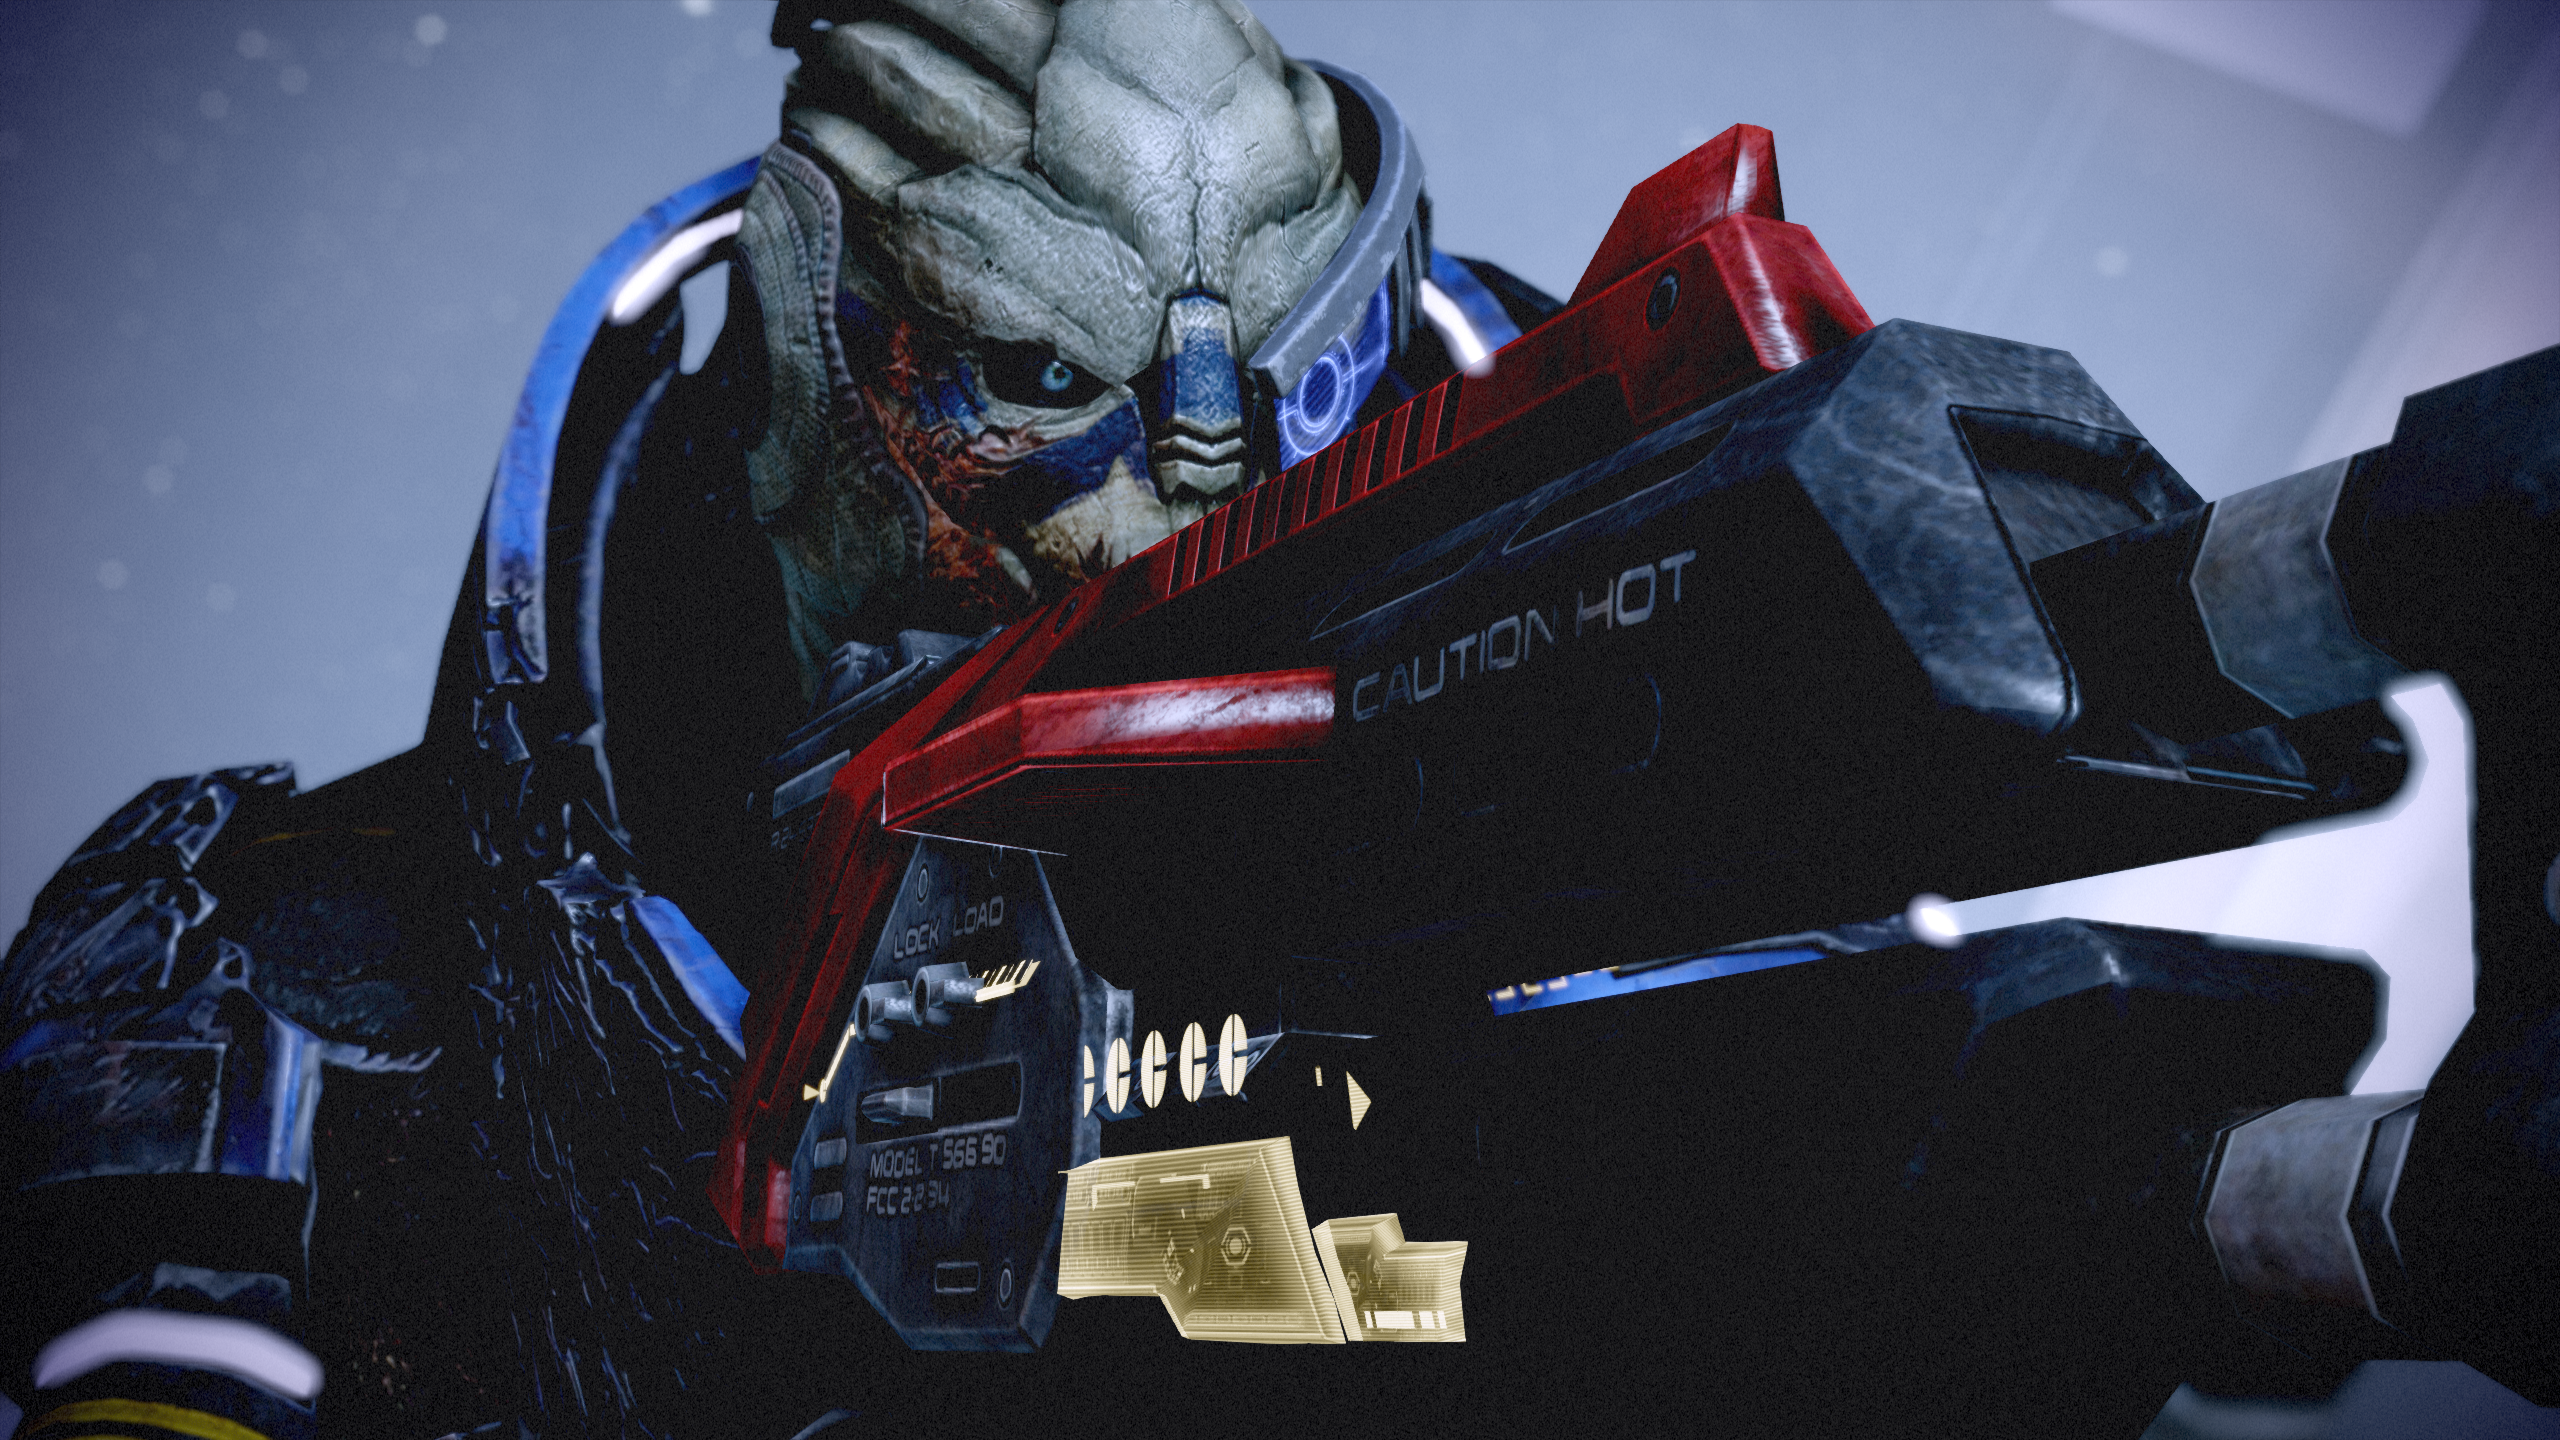 """The lizard-like face of Garrus from Mass Effect 2 peering down the sights of a large gun. The side of the gun reads """"Caution: Hot."""""""